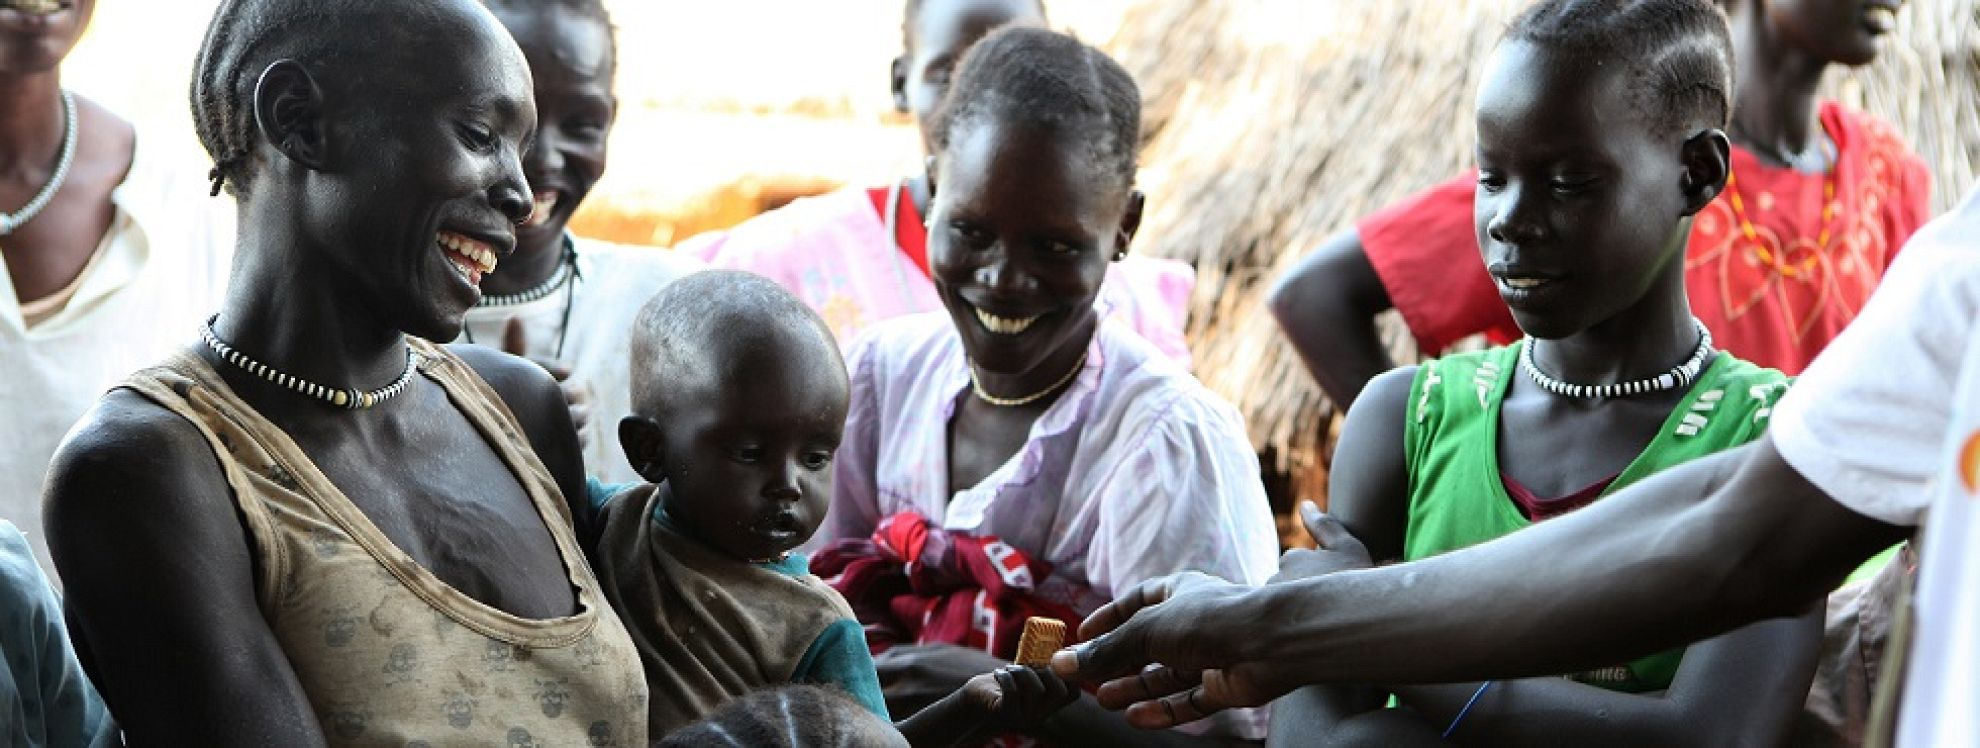 Latest News Malaria consortium supports national ownership and call for increased funding in tackling neglected tropical diseases